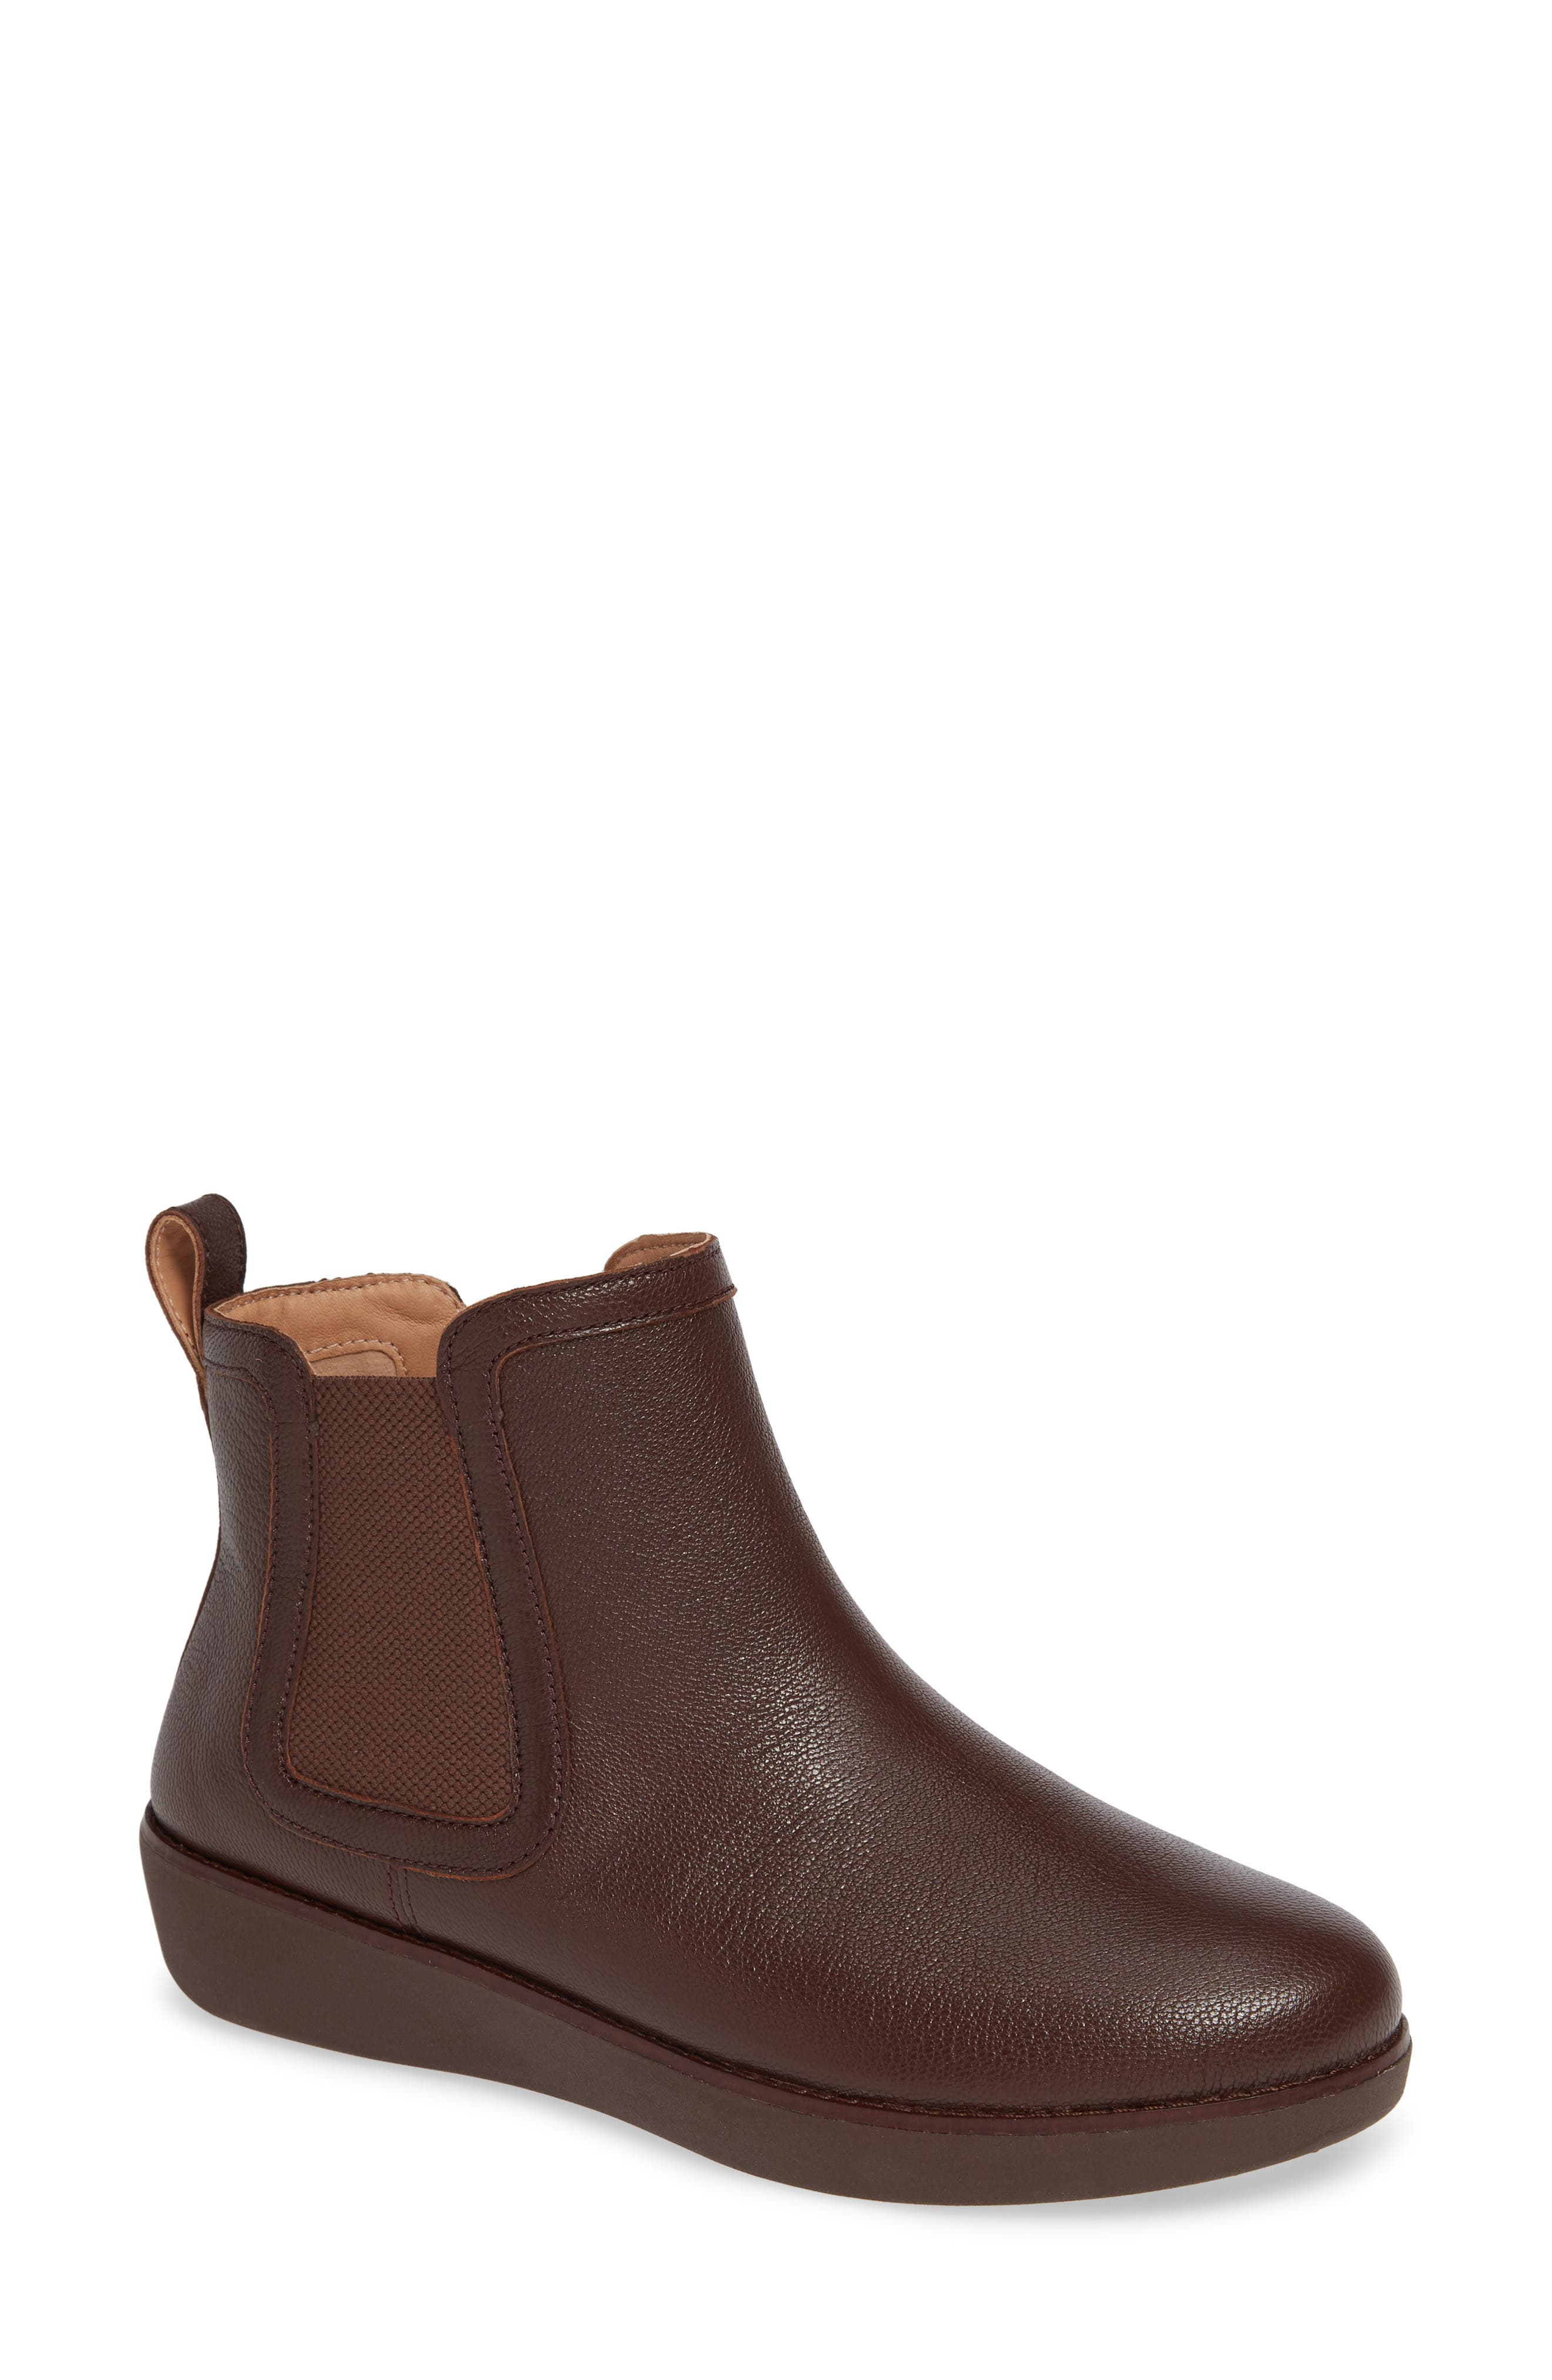 7bcdcd93ef4e4 Fitflop Chai Bootie- Brown